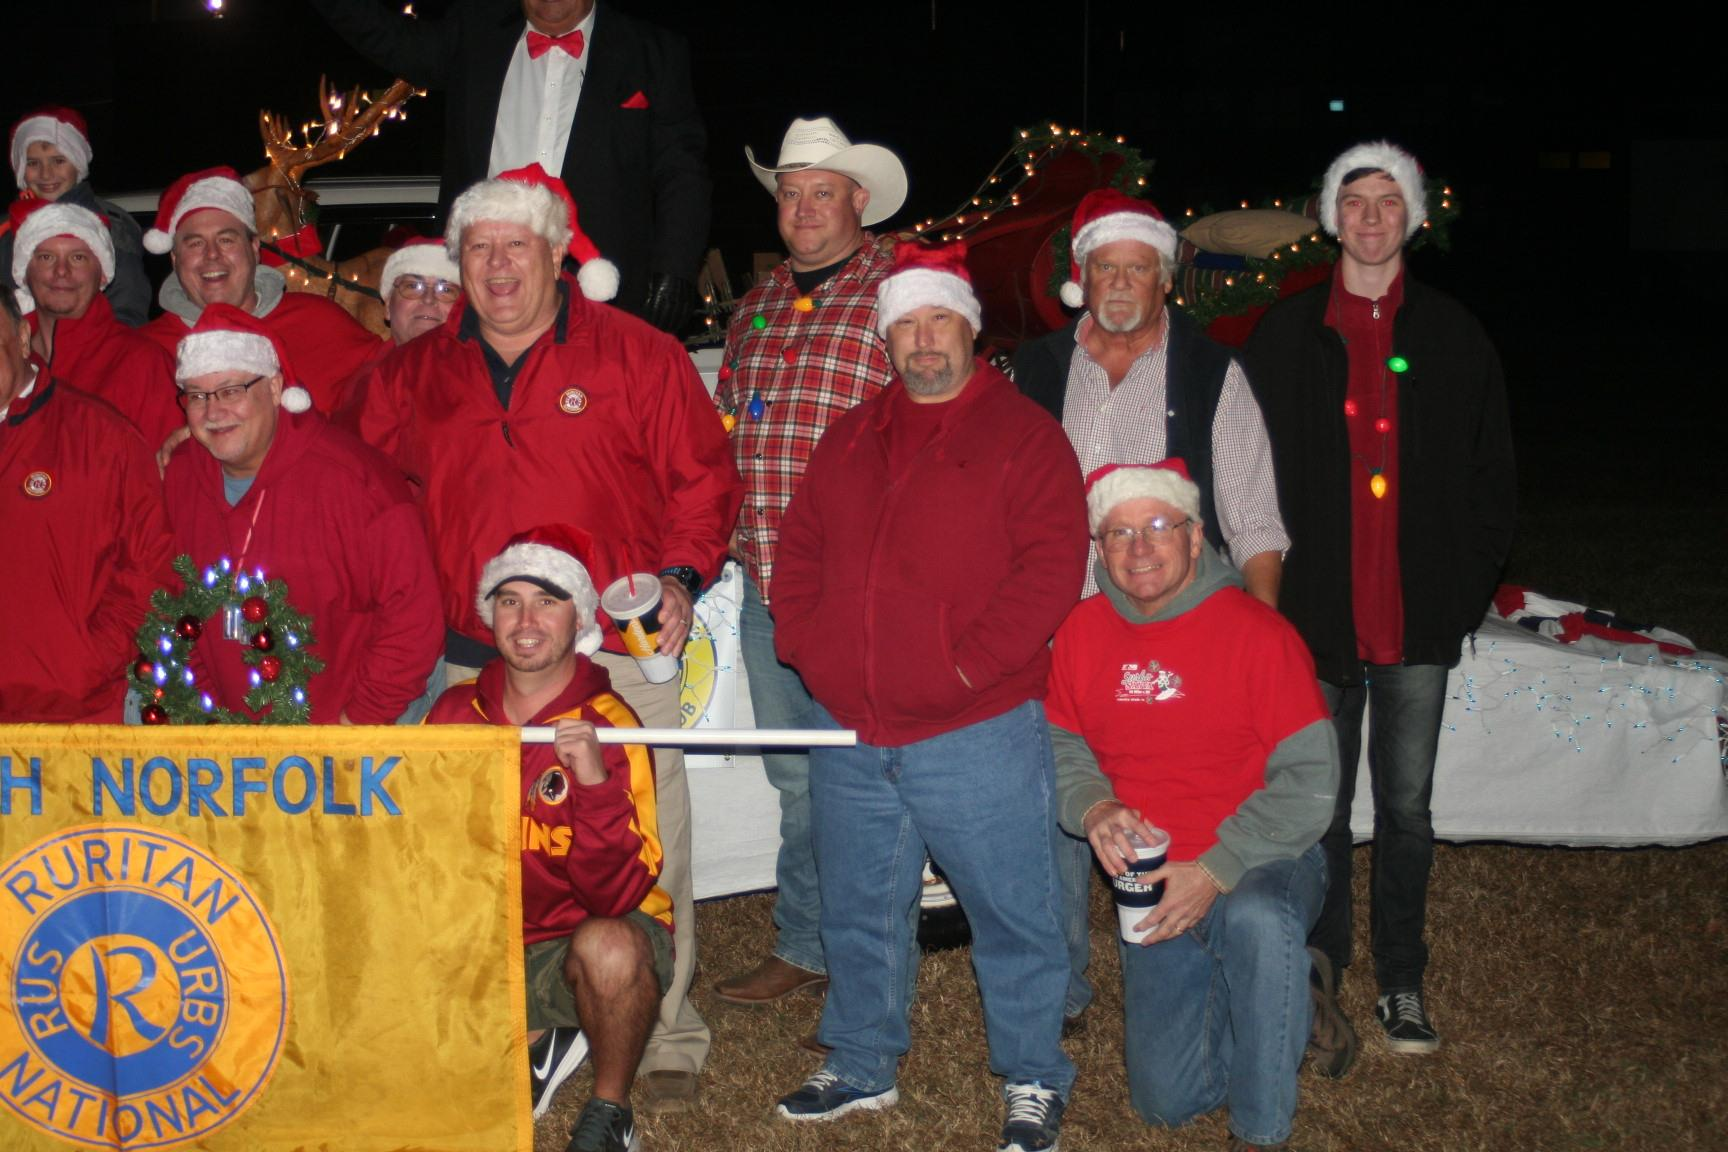 Great Bridge Rotary Christmas Parade – South Norfolk Ruritan Club